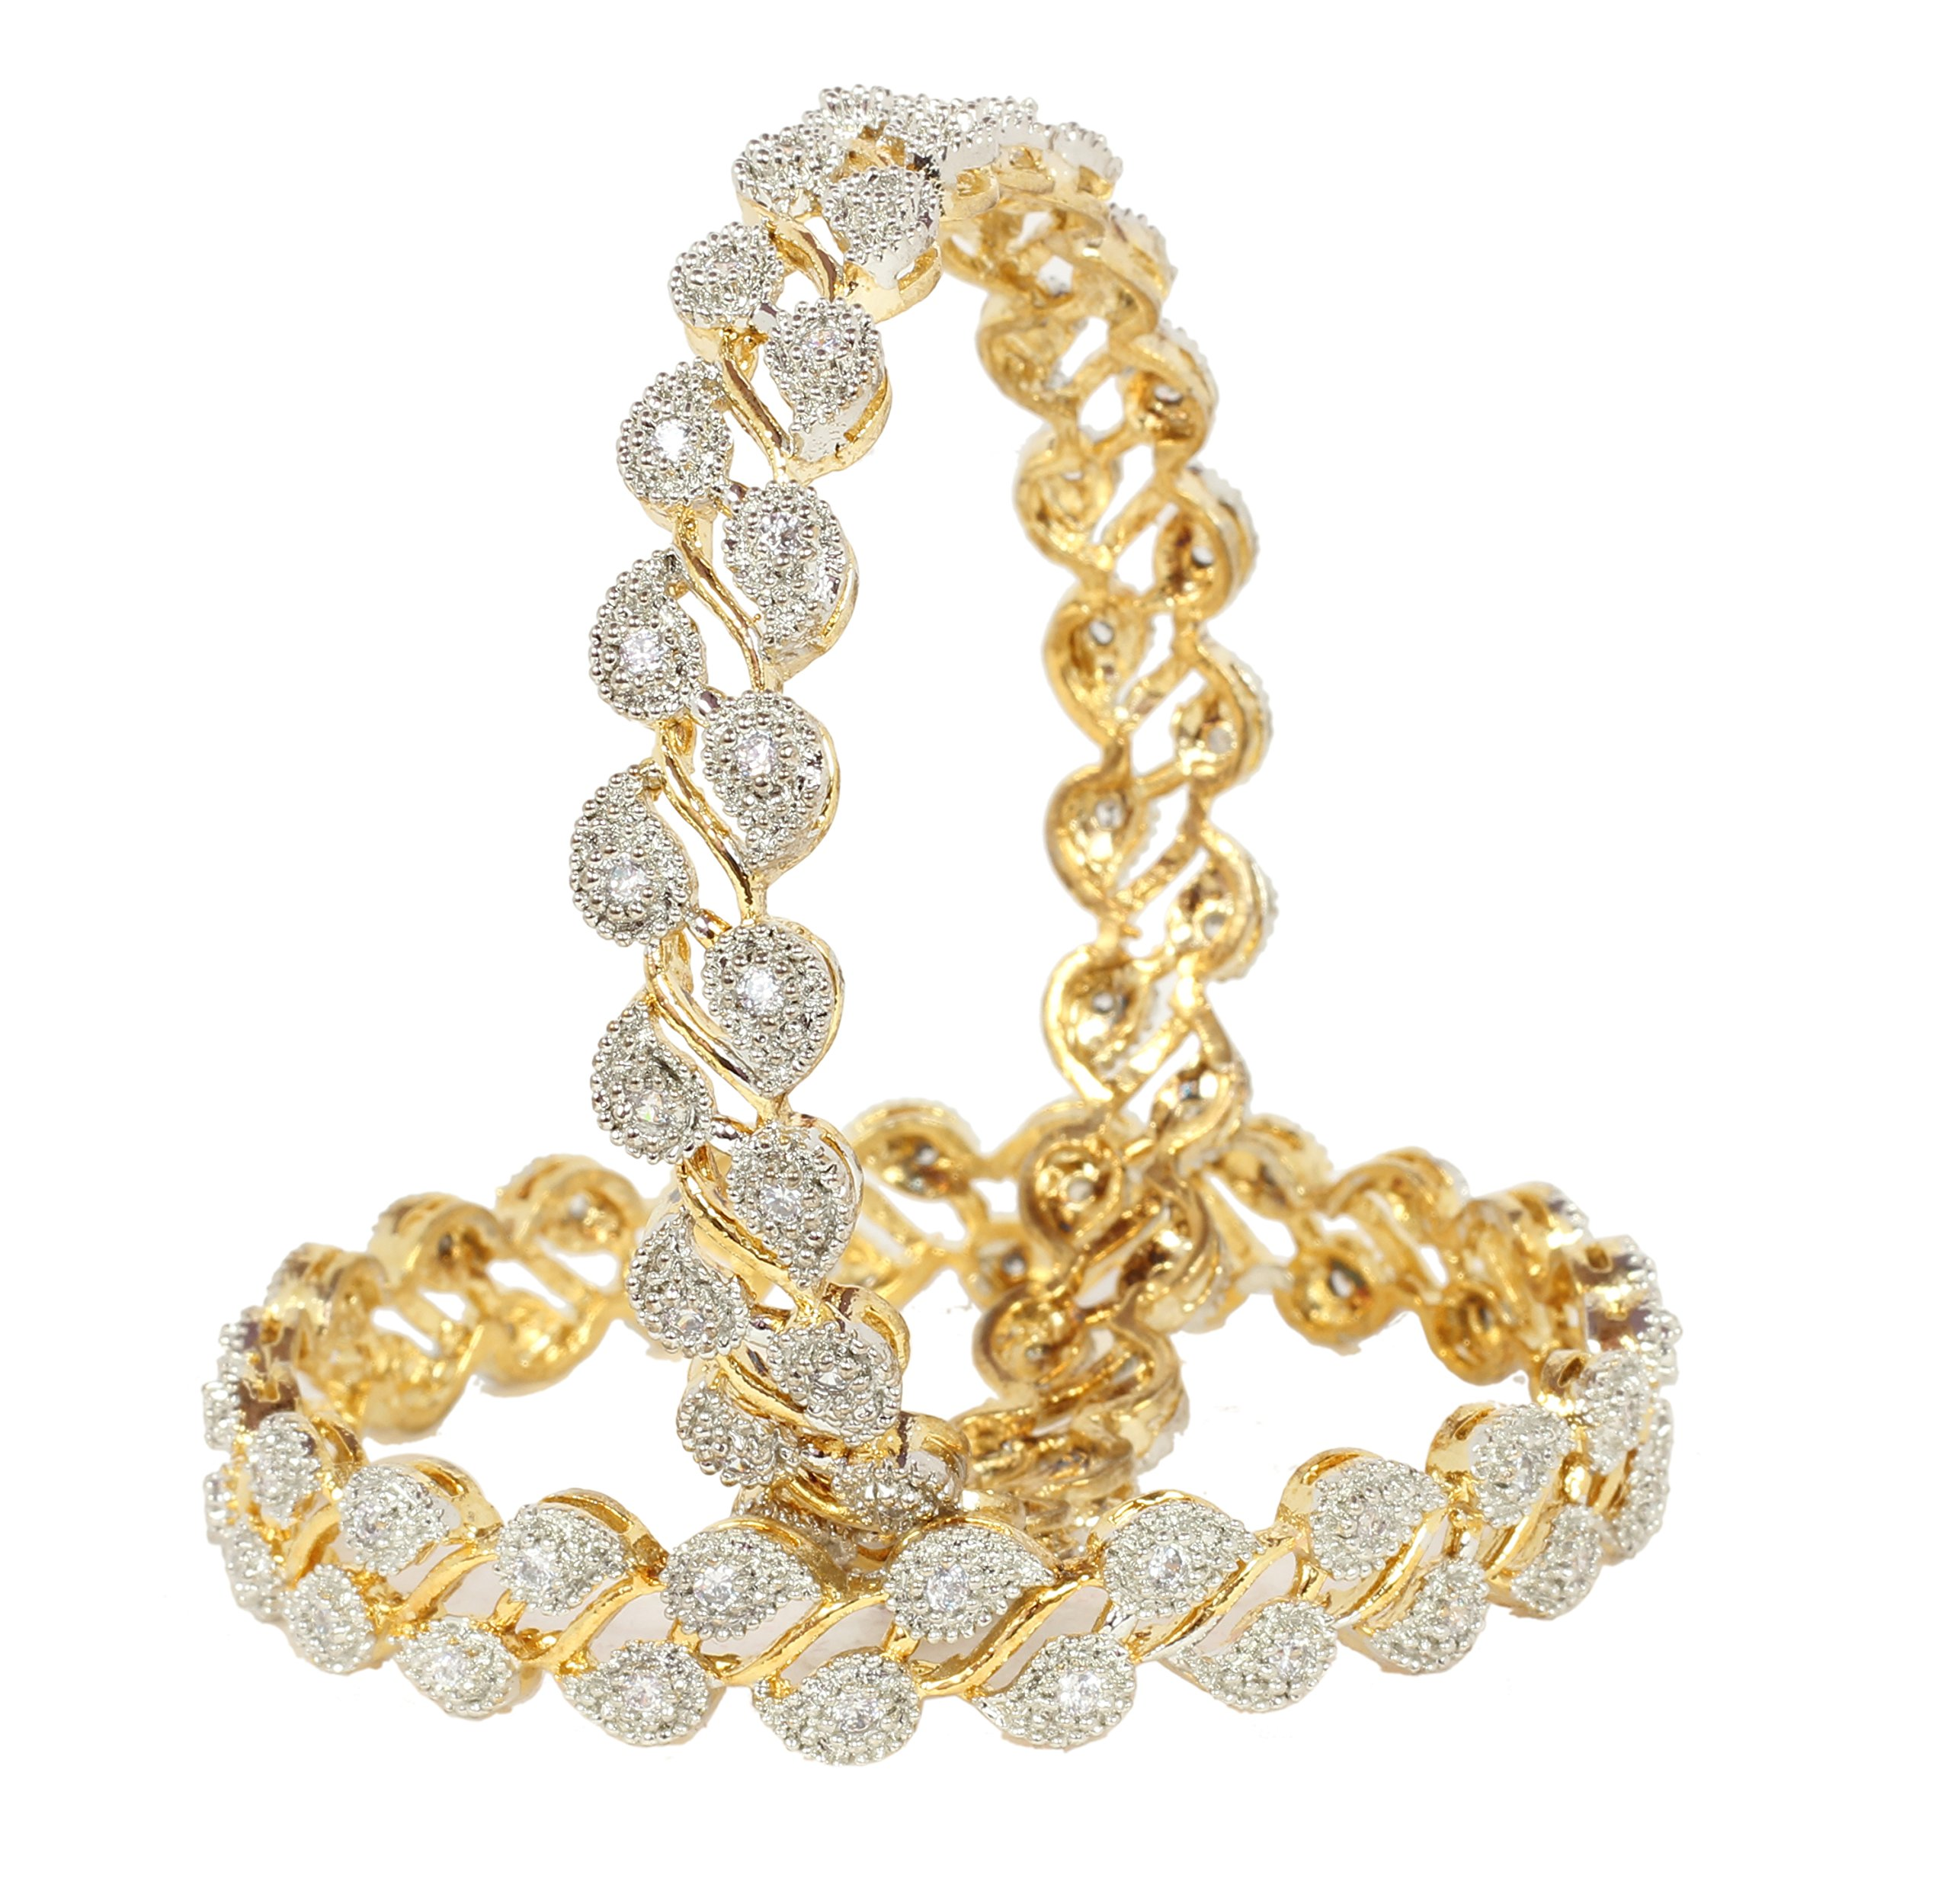 Indian Traditional Bollywood Gold Plated Zircon Made American Diamond Bangle Set Party Jewelry (2.4)